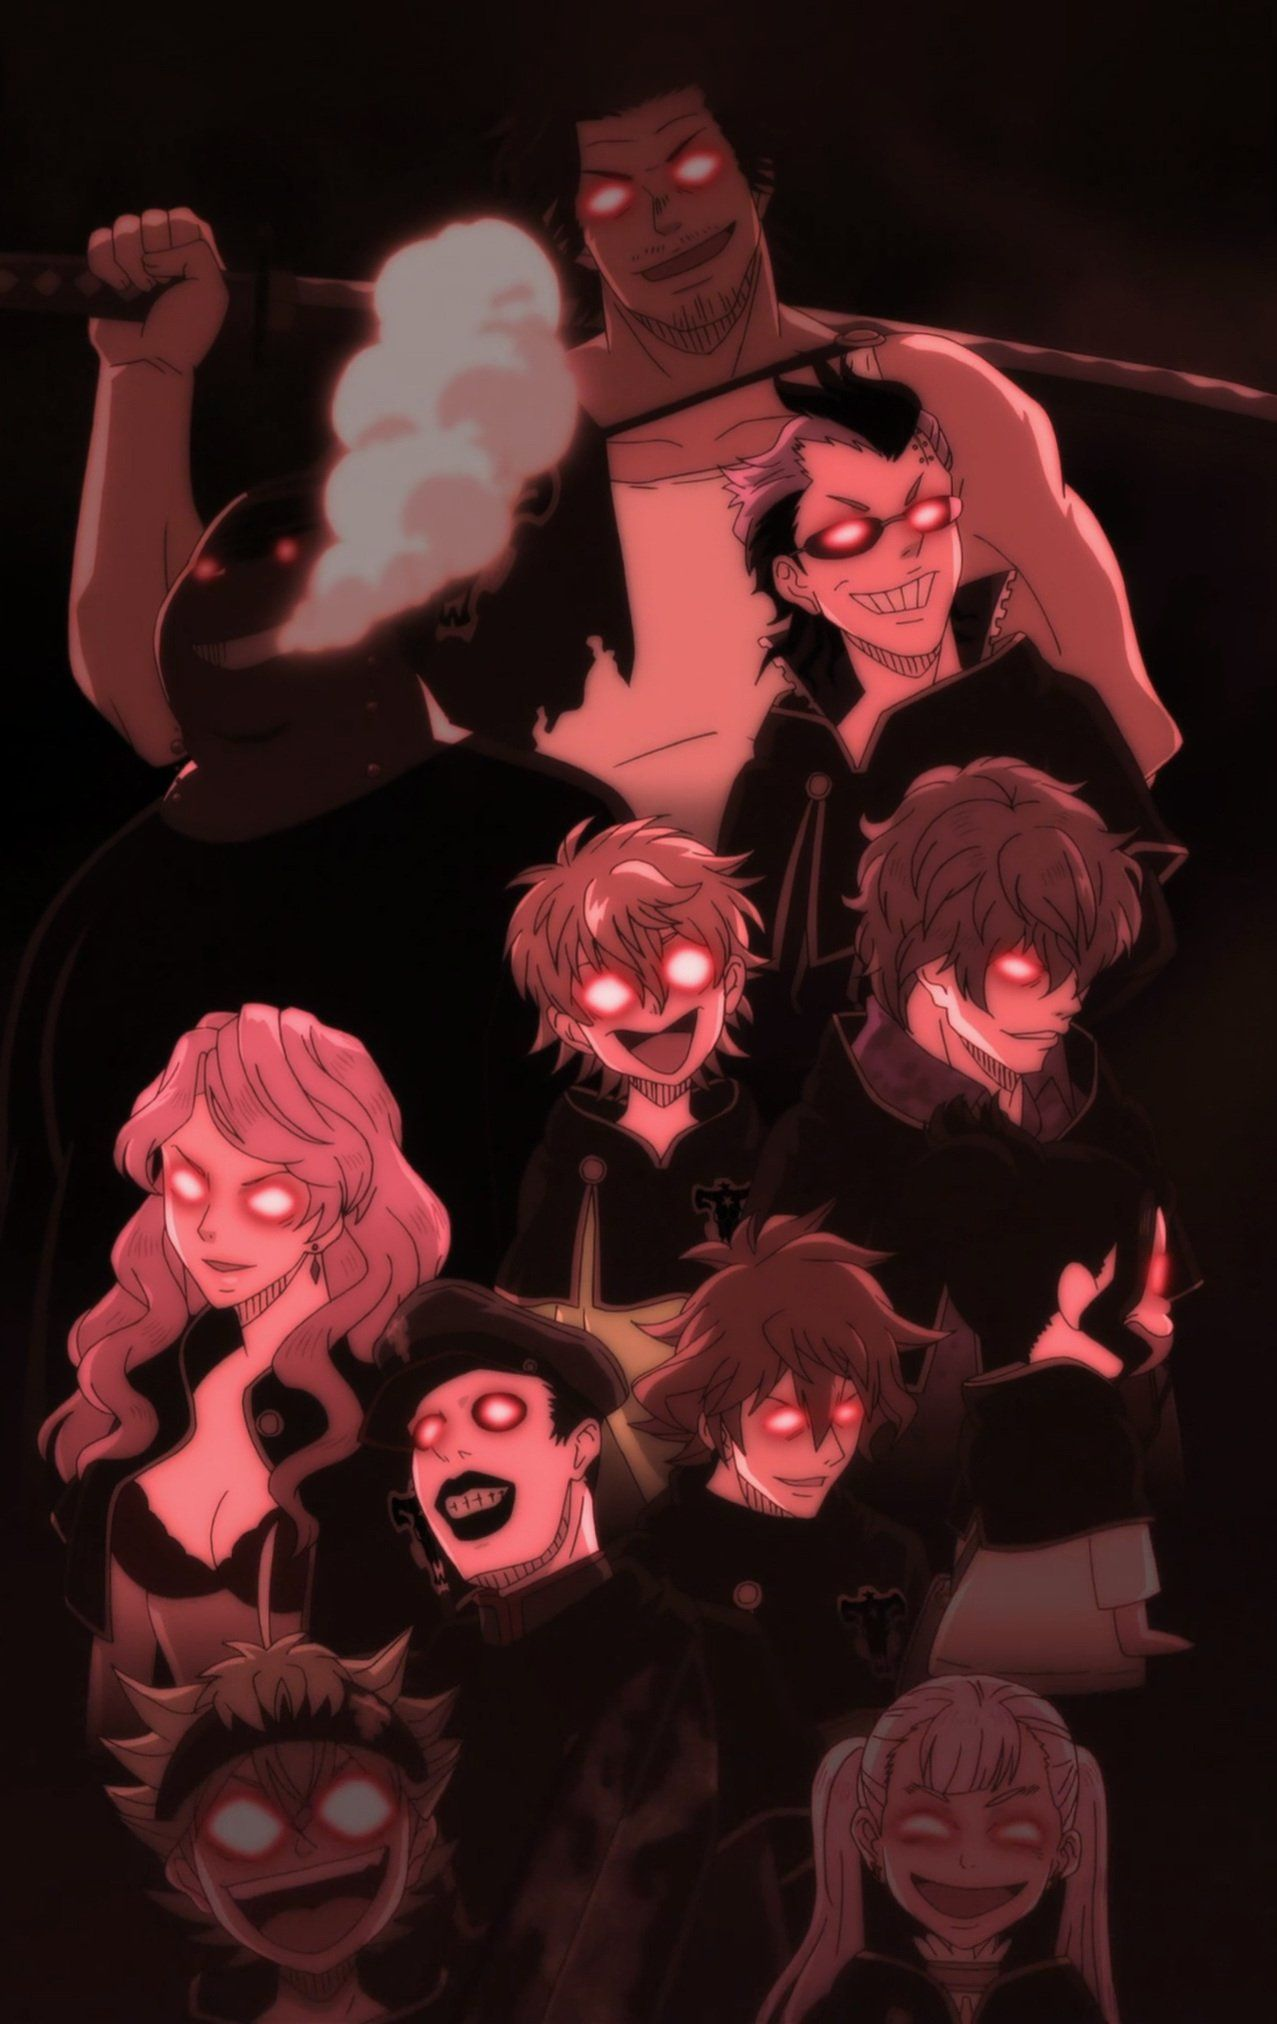 Pin By Orangeyouhappy On Black Clover Black Clover Manga Black Clover Anime Anime